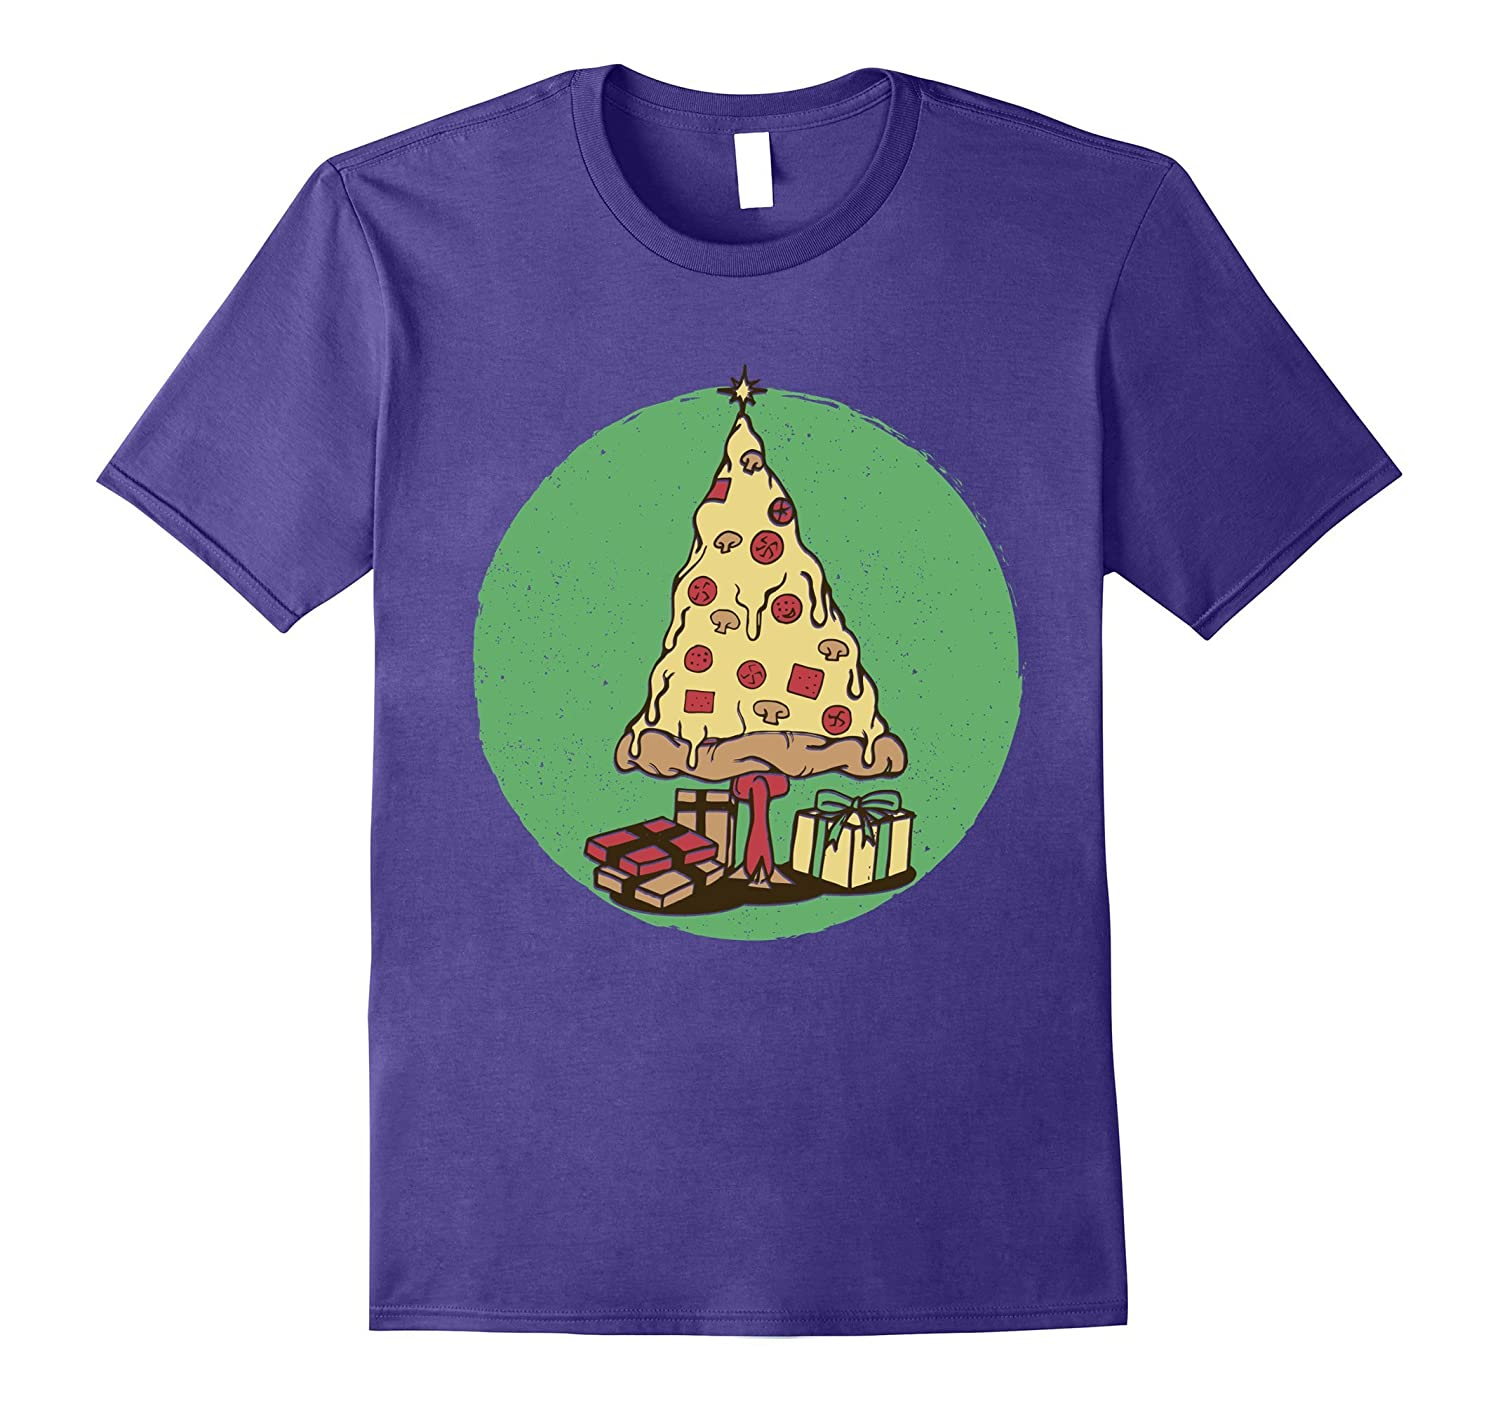 Pizza Christmas Tree Ugly Sweater Pepperoni Food Funny Tee